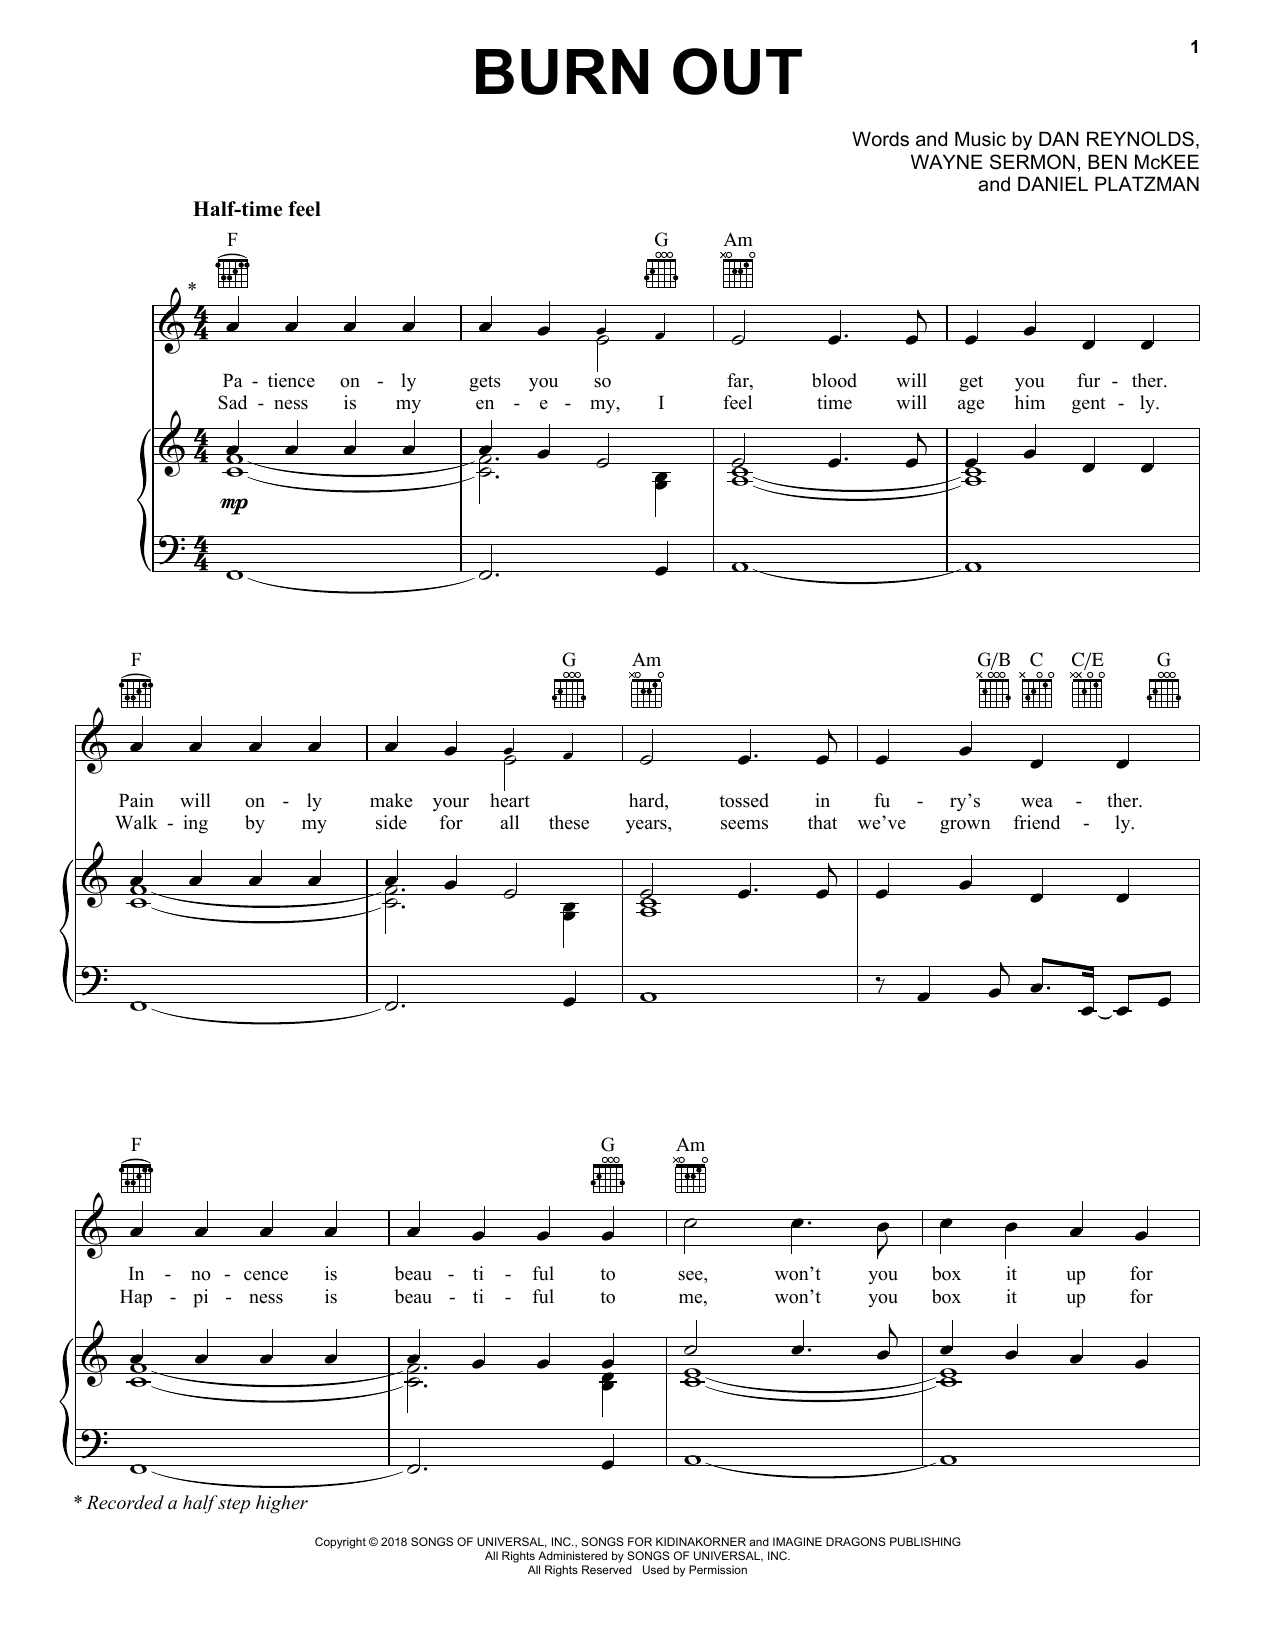 Imagine Dragons Burn Out sheet music notes and chords. Download Printable PDF.